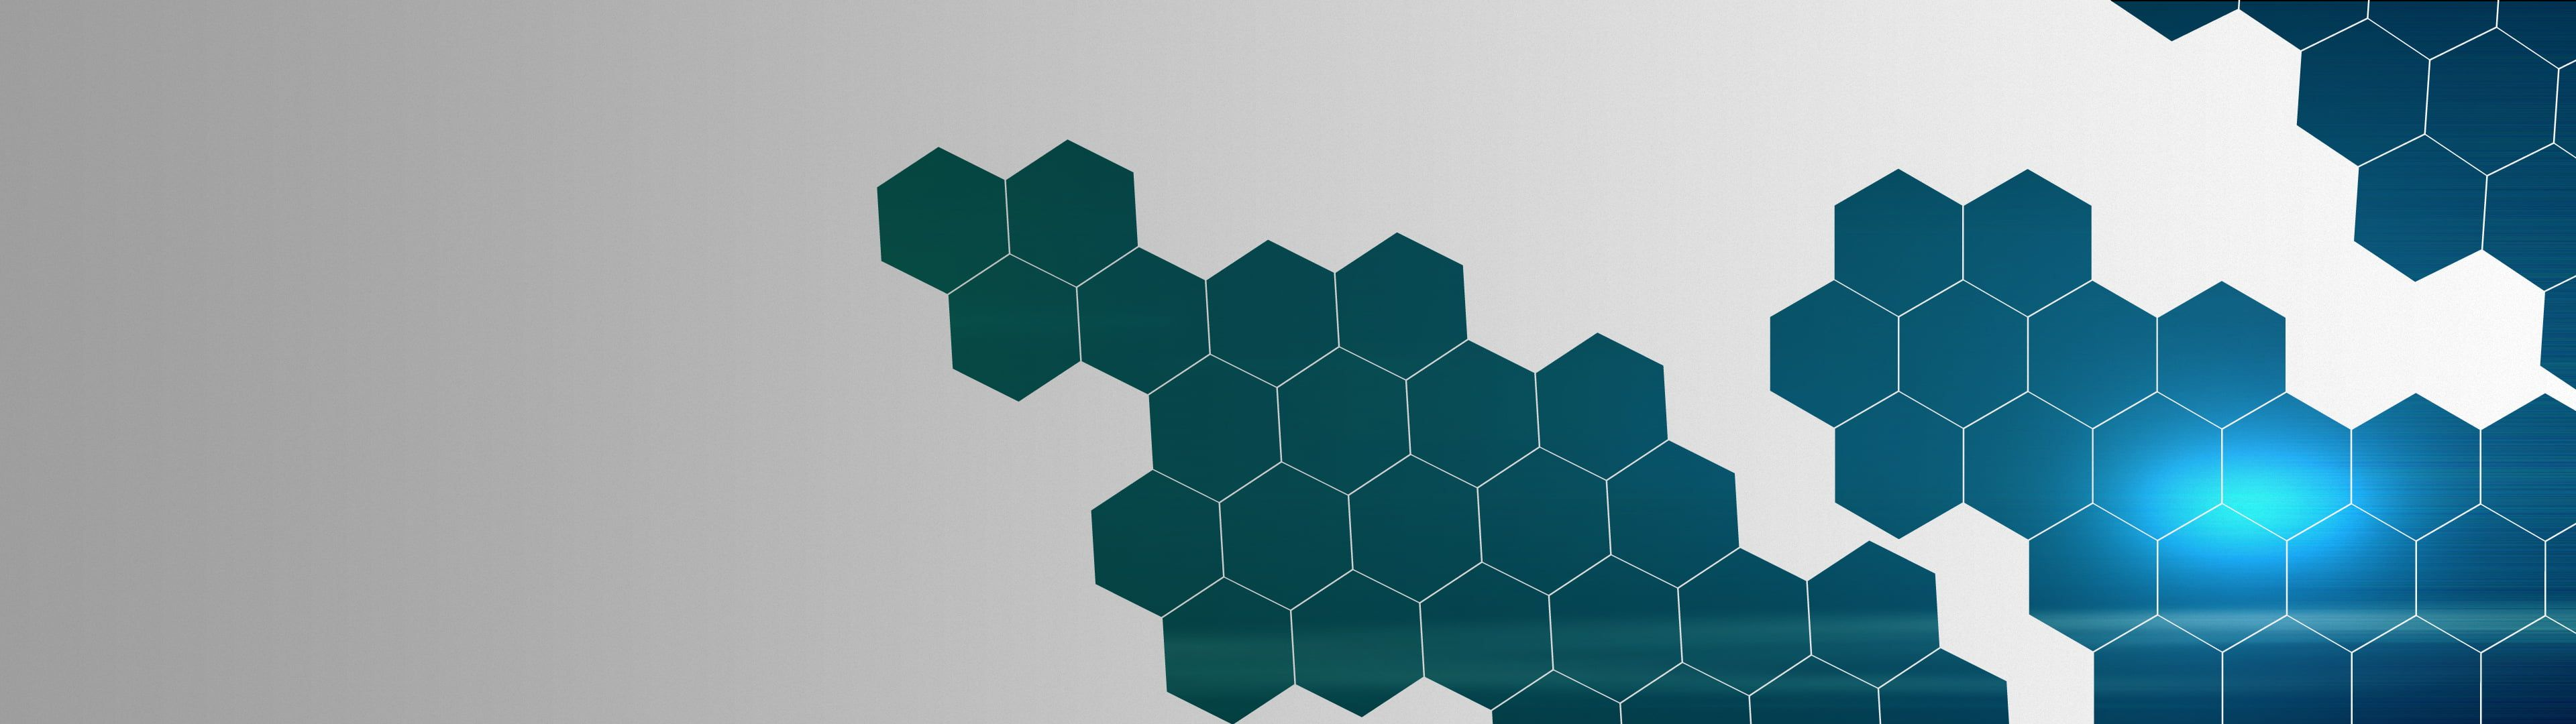 White And Blue Bee Cone Wallpaper White And Green Wallpaper Geometry Multiple Display Simple Backgrou Dual Screen Wallpaper Hd Wallpaper Death Star Wallpaper